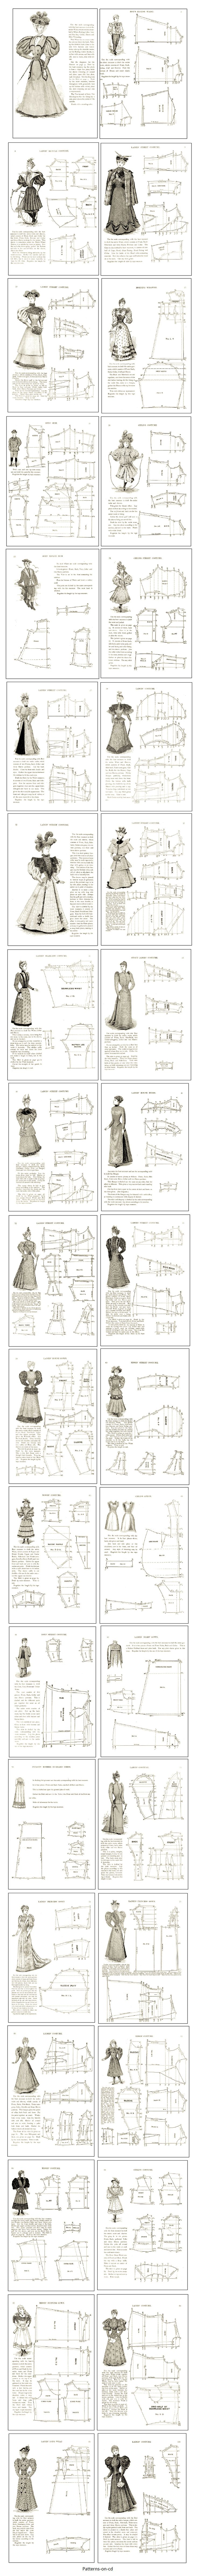 80 Patterns costume d'époque victorienne coupe Dress Making Guide sur CD